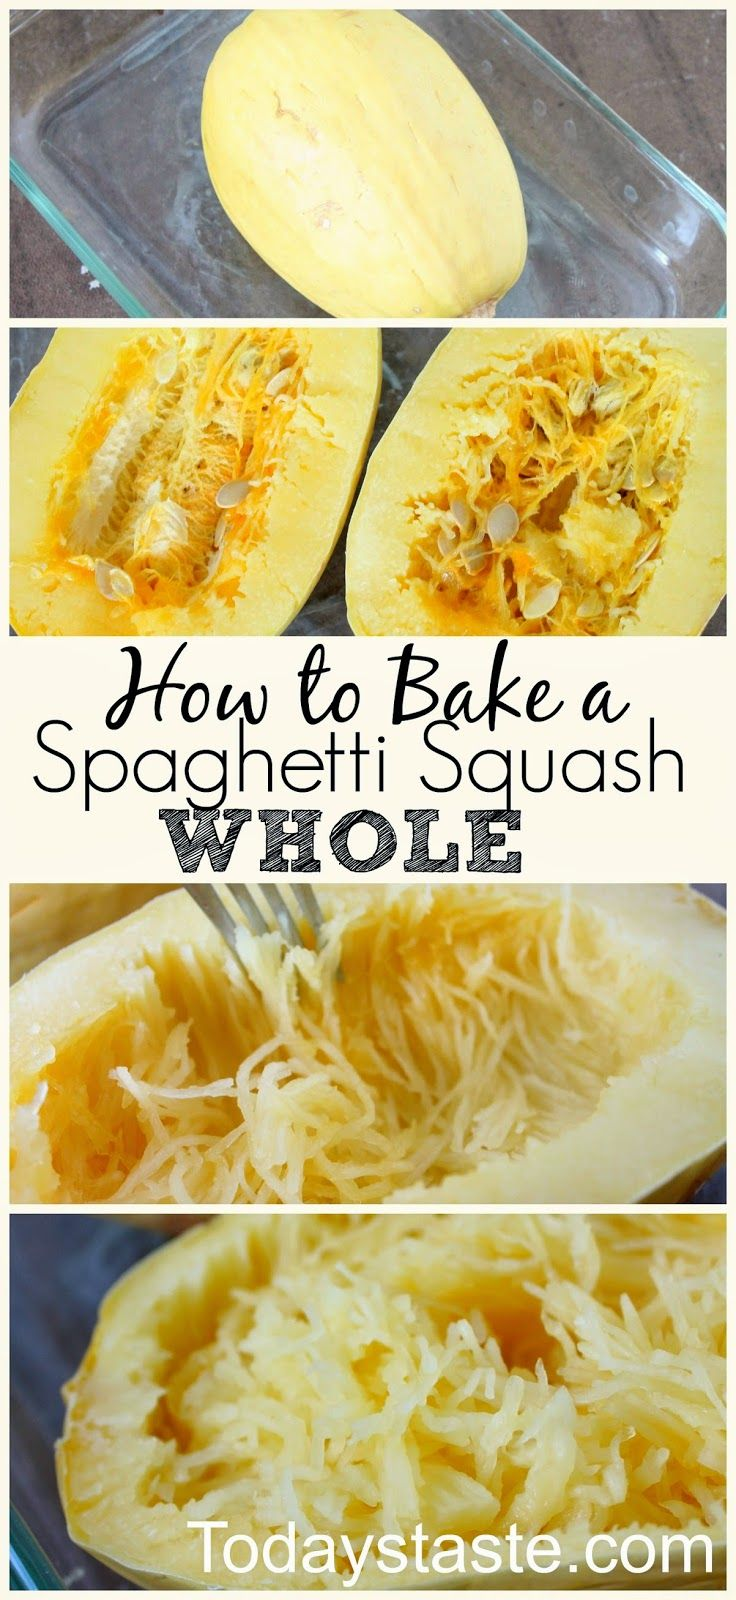 I hate trying to cut open a spaghetti squash to cook it. It is so hard to get a knife through! After some research I've decided to give...